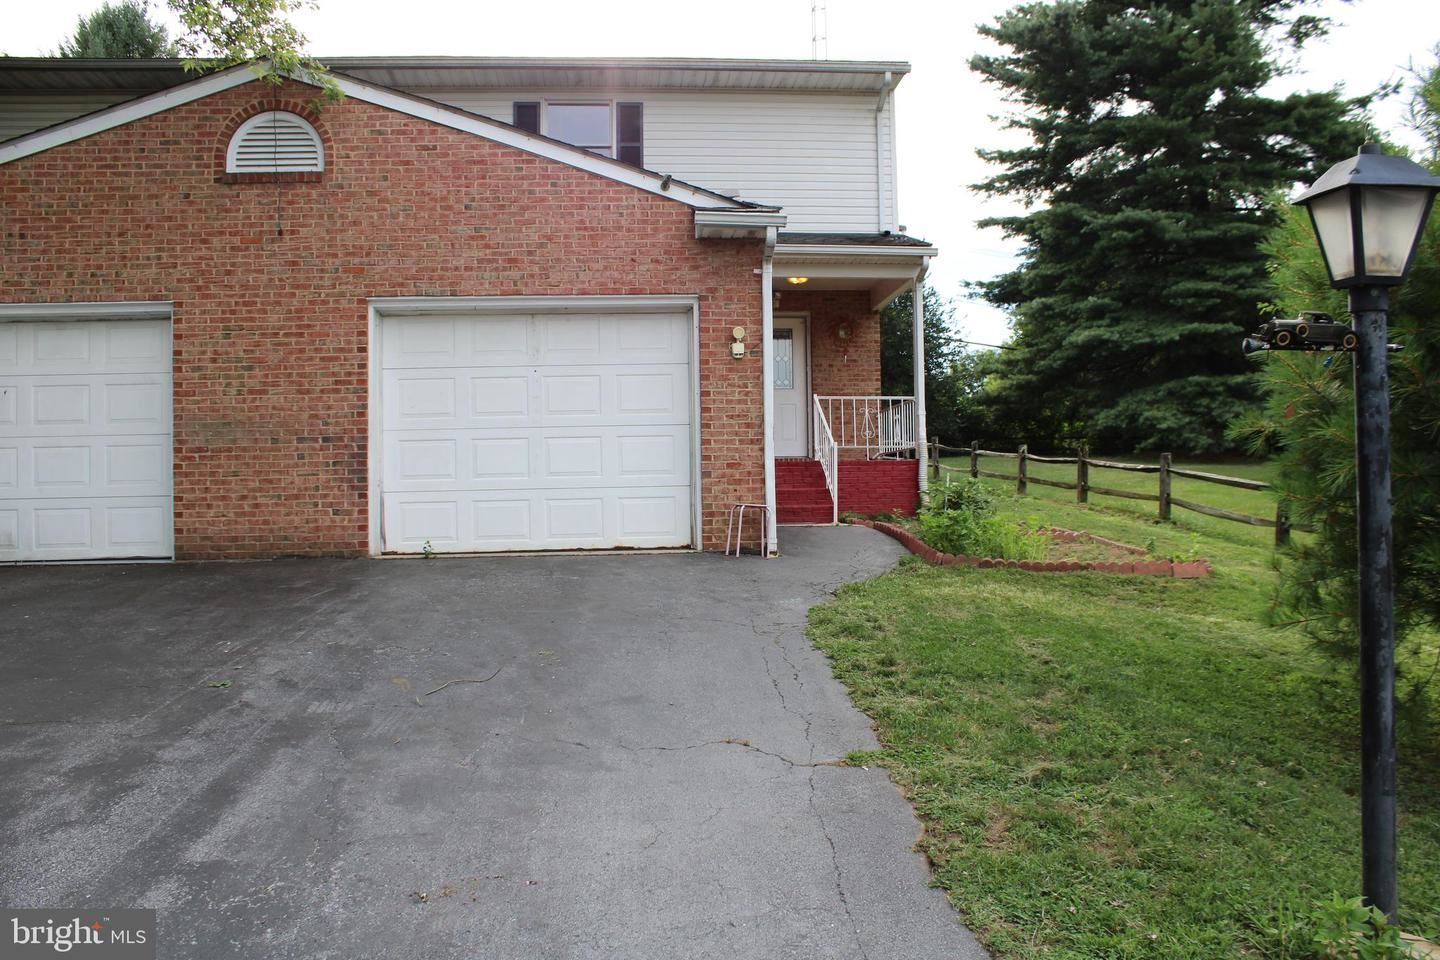 238 N COLONIAL DR, Hagerstown, MD 21742 - #: MDWA172788